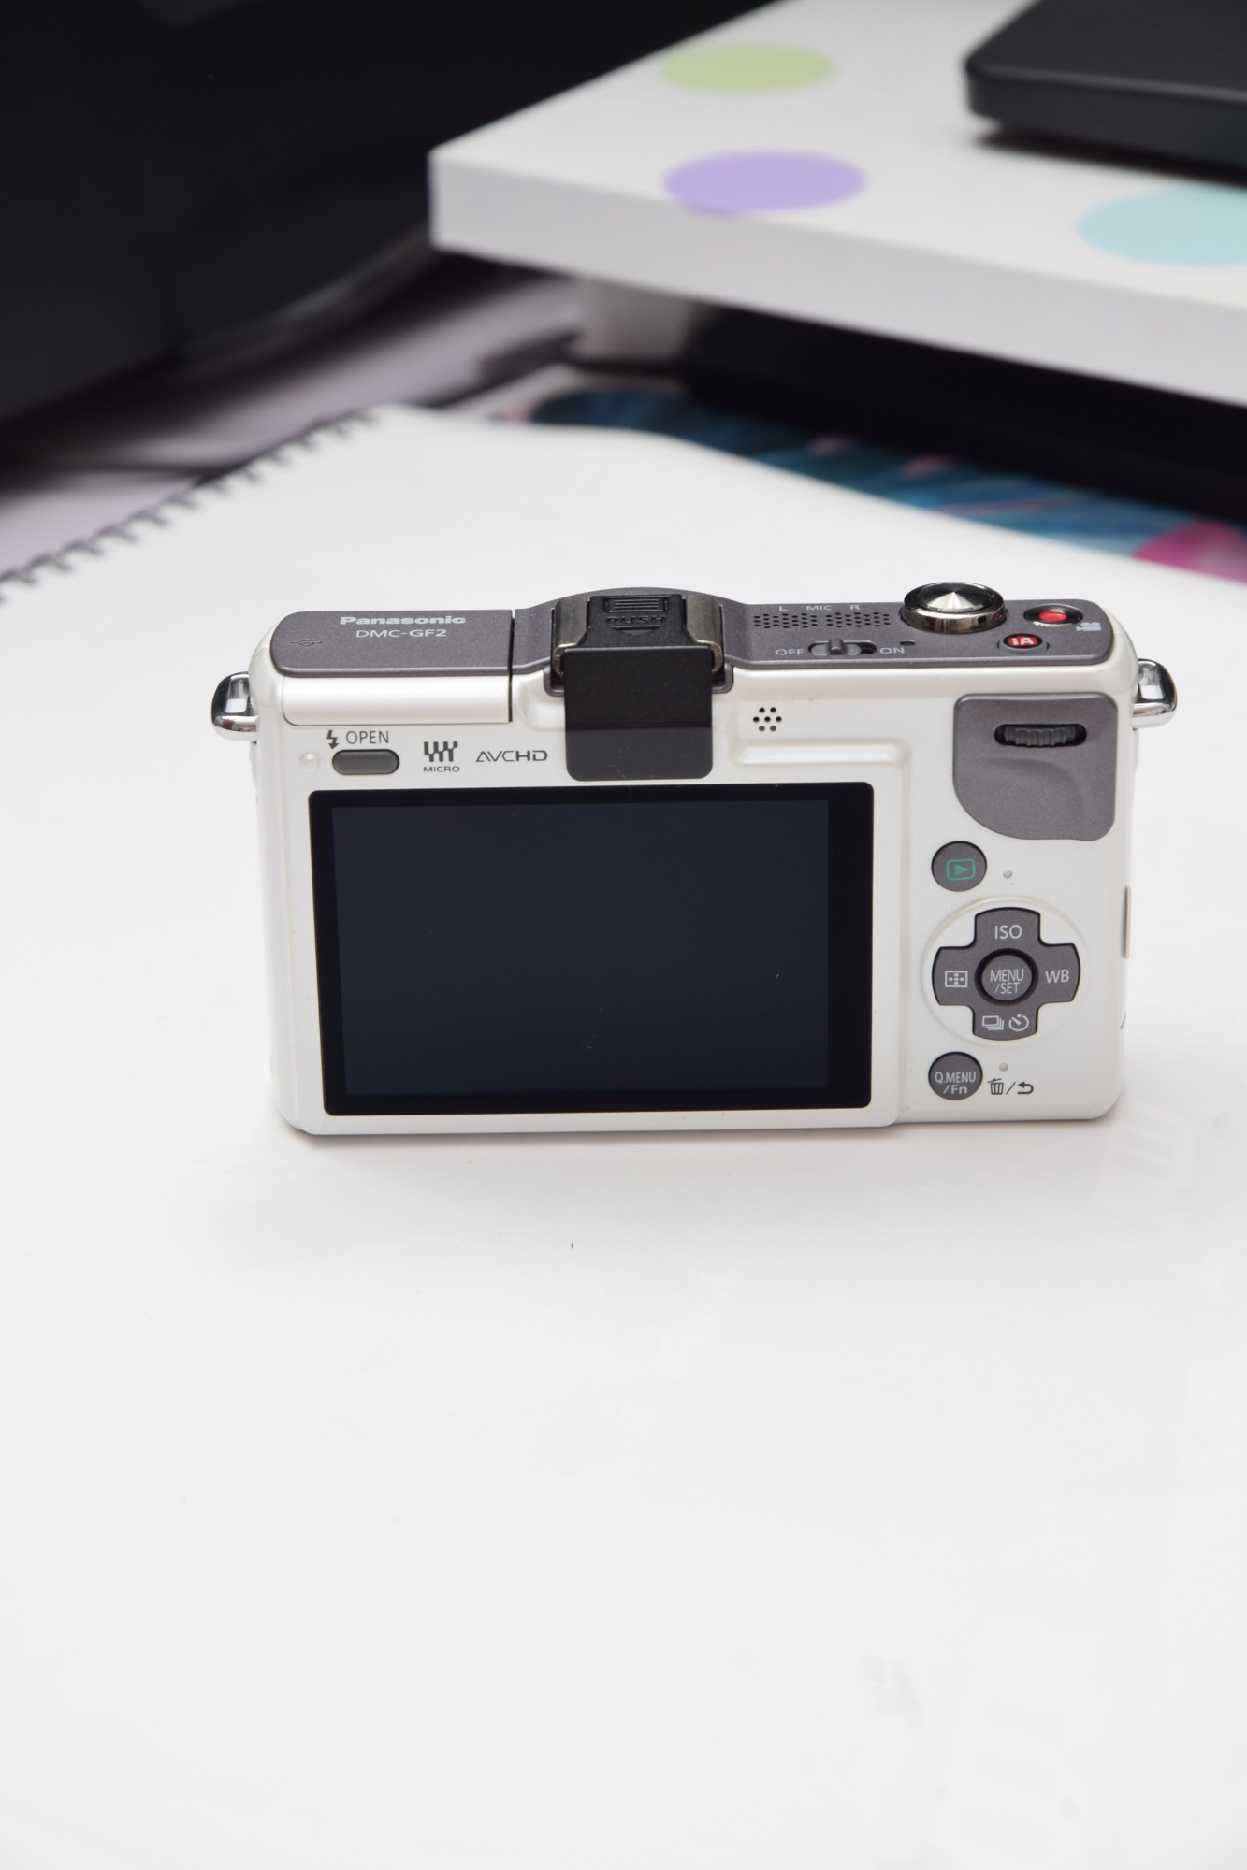 H5c7d80561bd04b29931a7aafeaf686cct USED,Panasonic GF2 12.1MP  Digital Camera with 3-inch LCD(NO LENS OR WITH LENS)